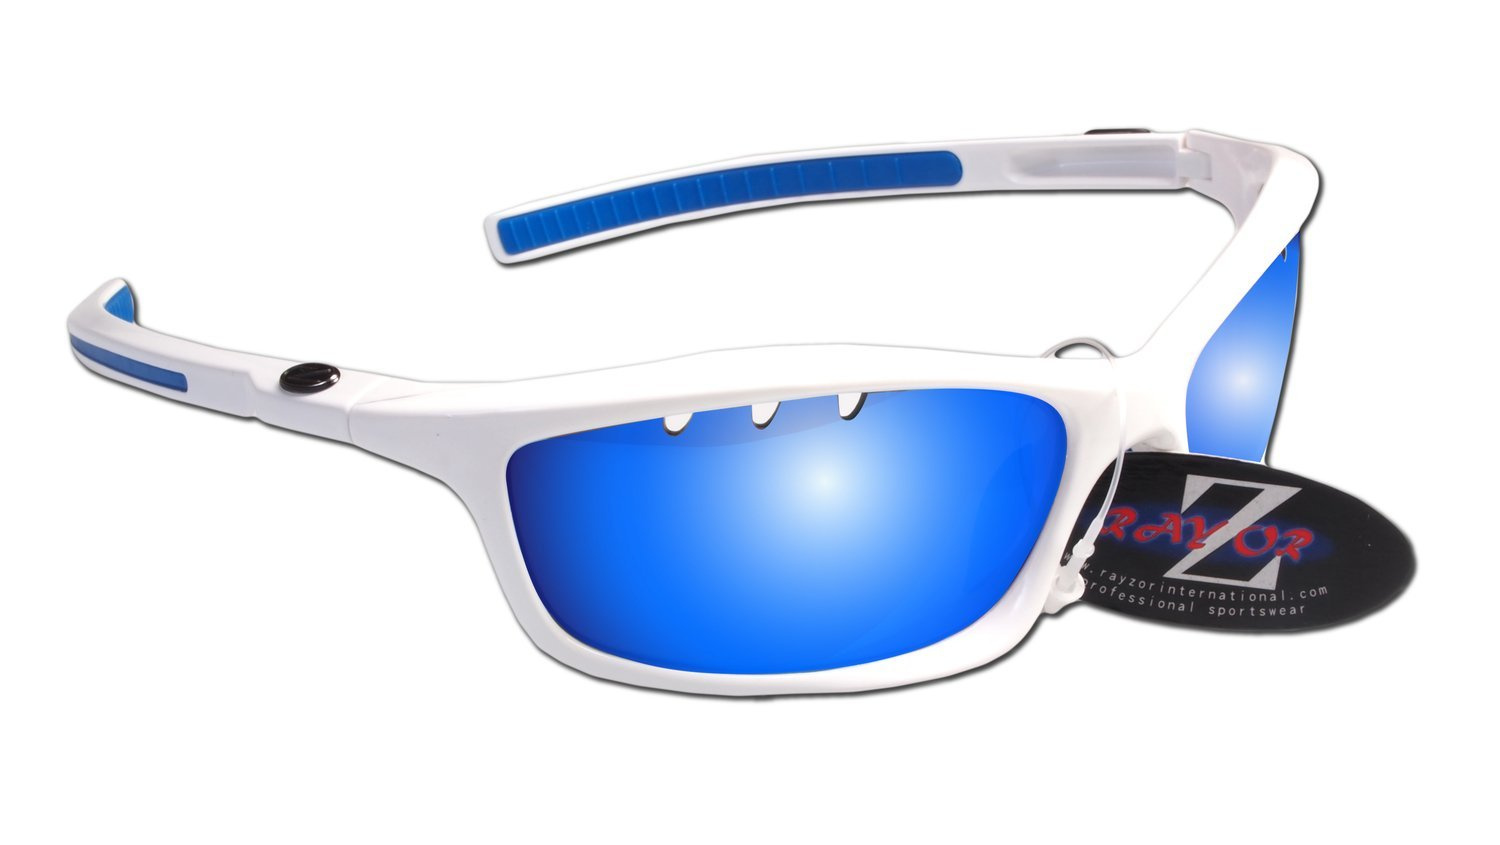 ee9374a5b514 Rayzor Professional Lightweight UV400 White Sports Wrap Cricket Sunglasses,  With a 1 Piece Vented Blue Iridium Anti-Glare Lens. by Rayzor - Shop Online  for ...